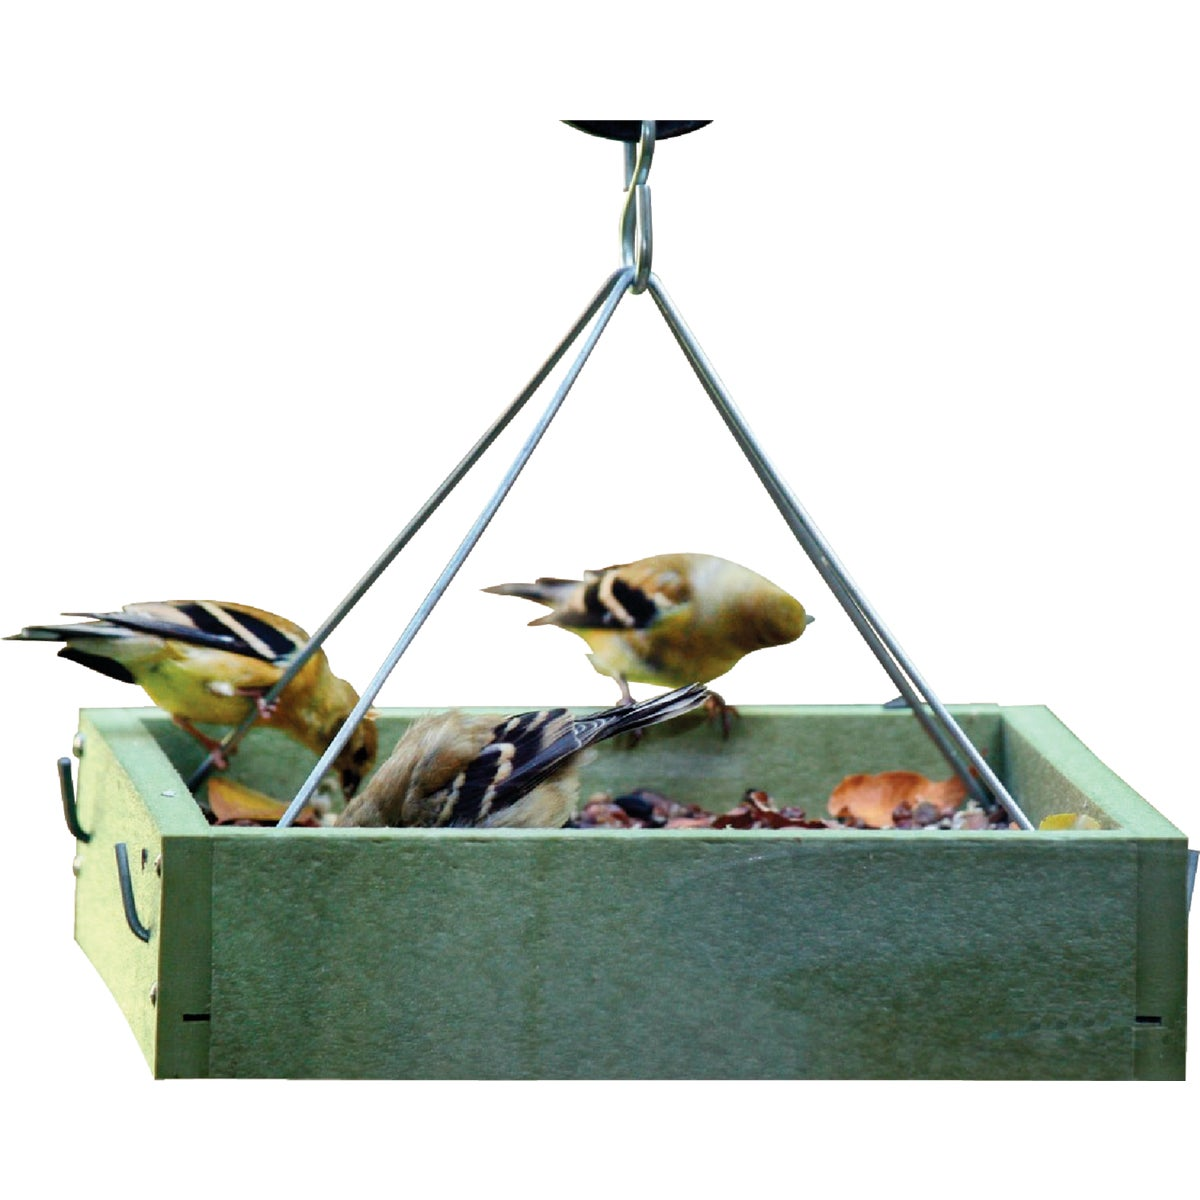 HANGING TRAY FEEDER - GSHPF100 by Birds Choice